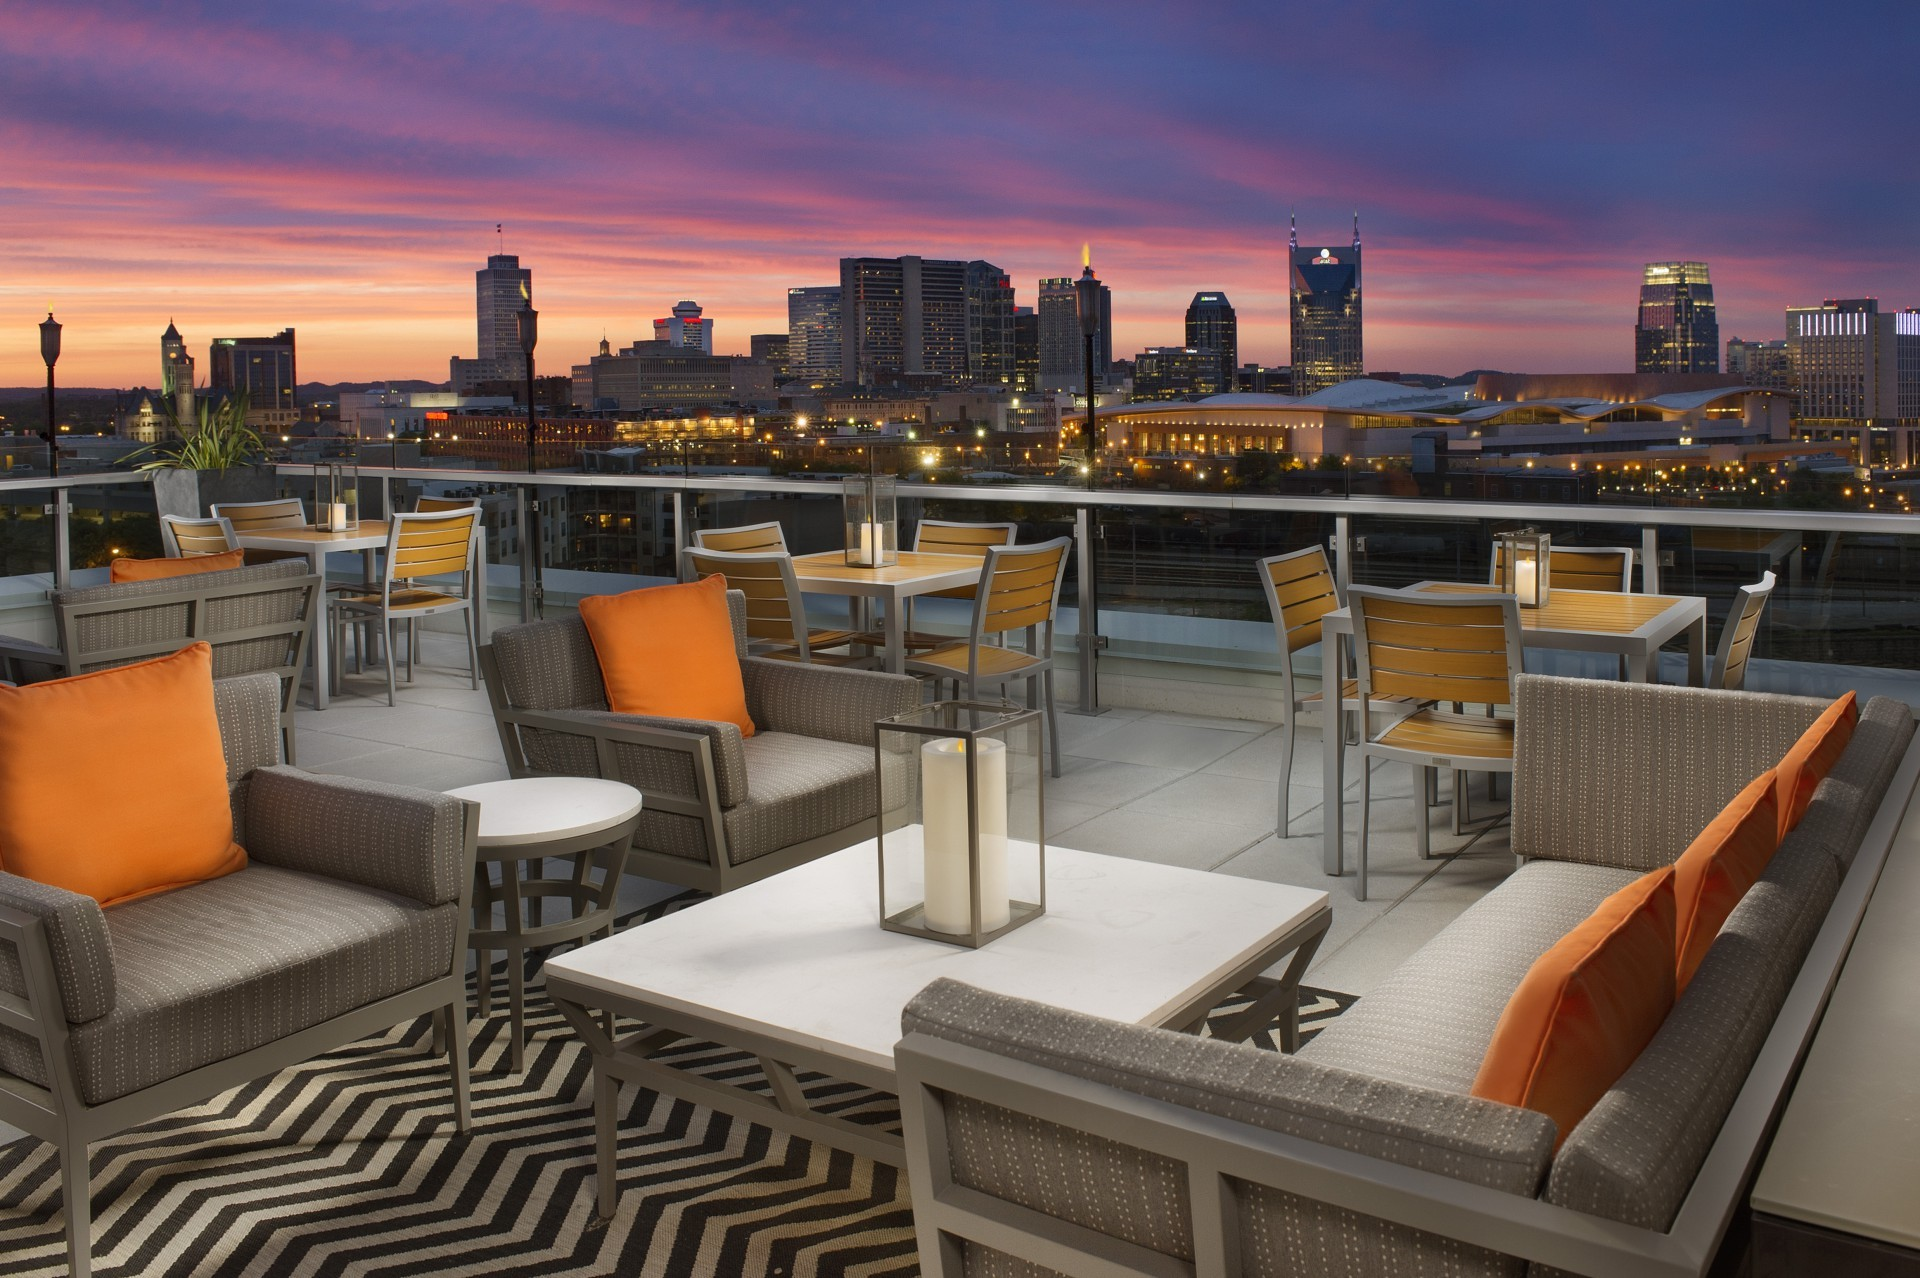 UP Rooftop Lounge